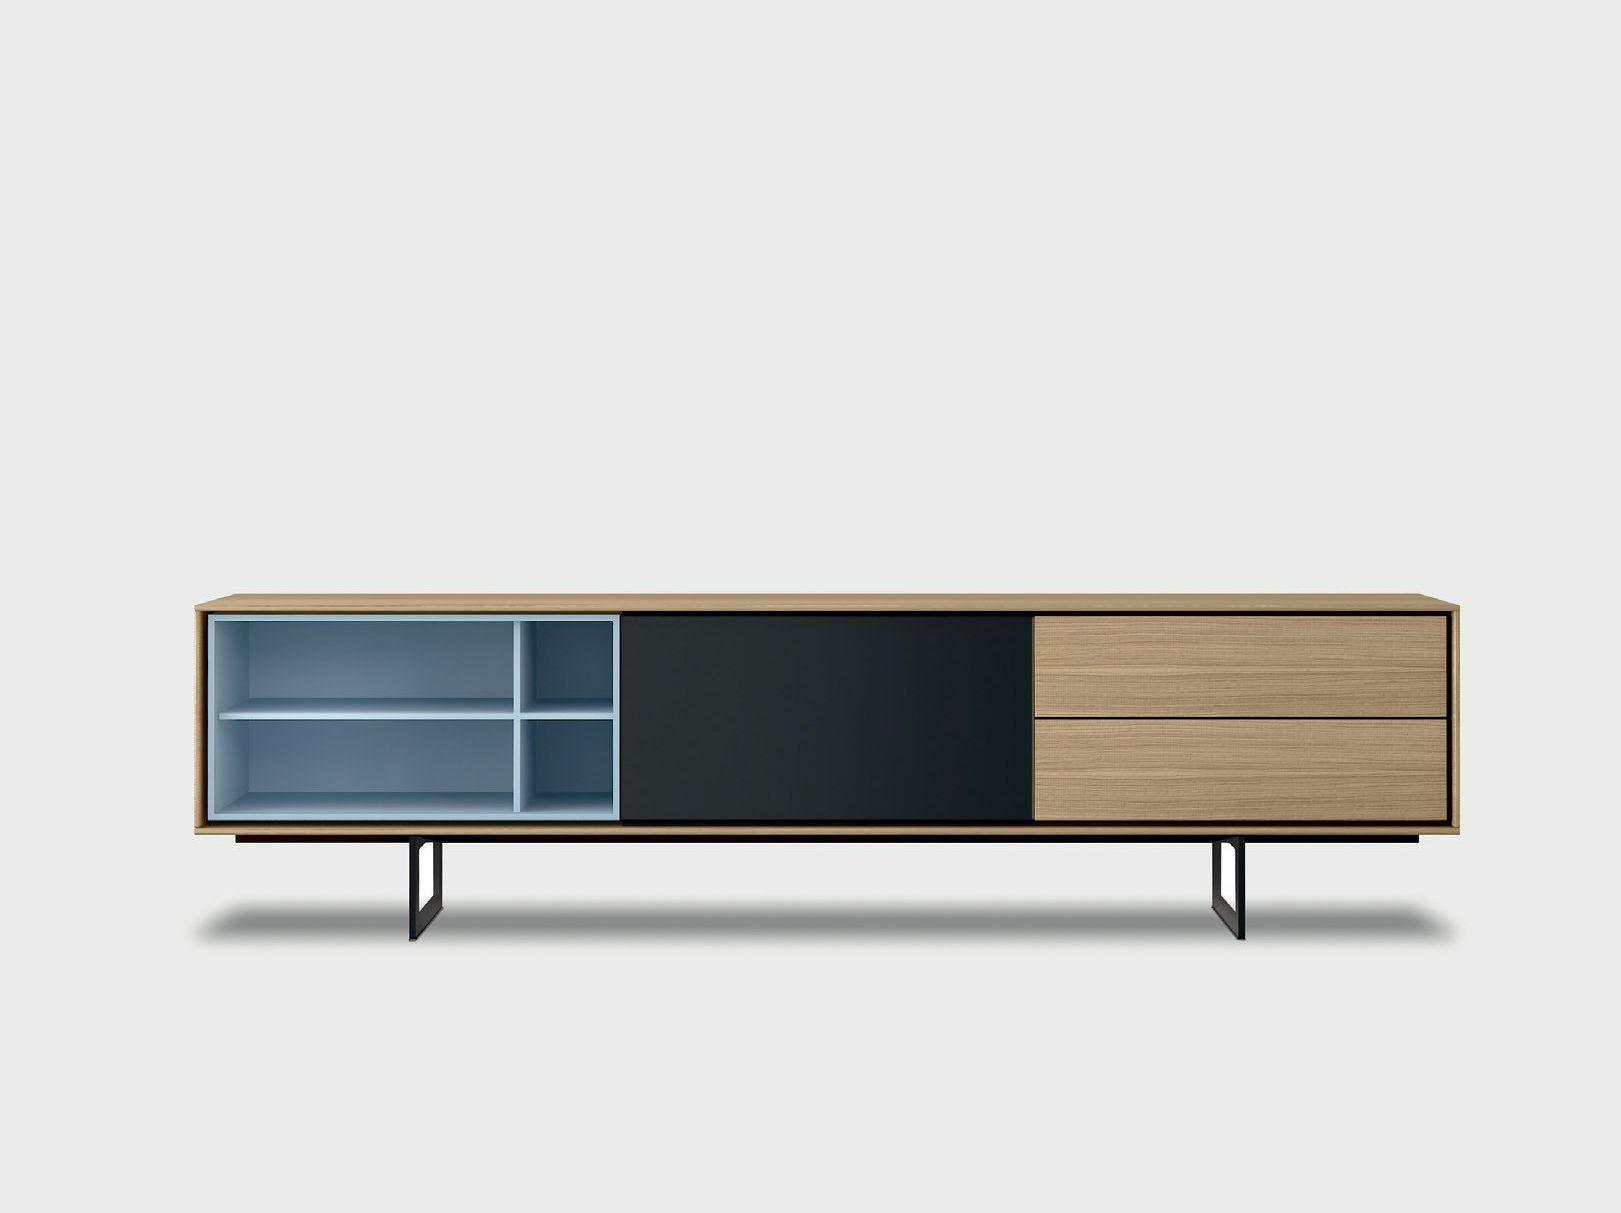 Lacquered Solid Wood Sideboard AURA C1 2 By TREKU Design Angel Martí,  Enrique Delamo